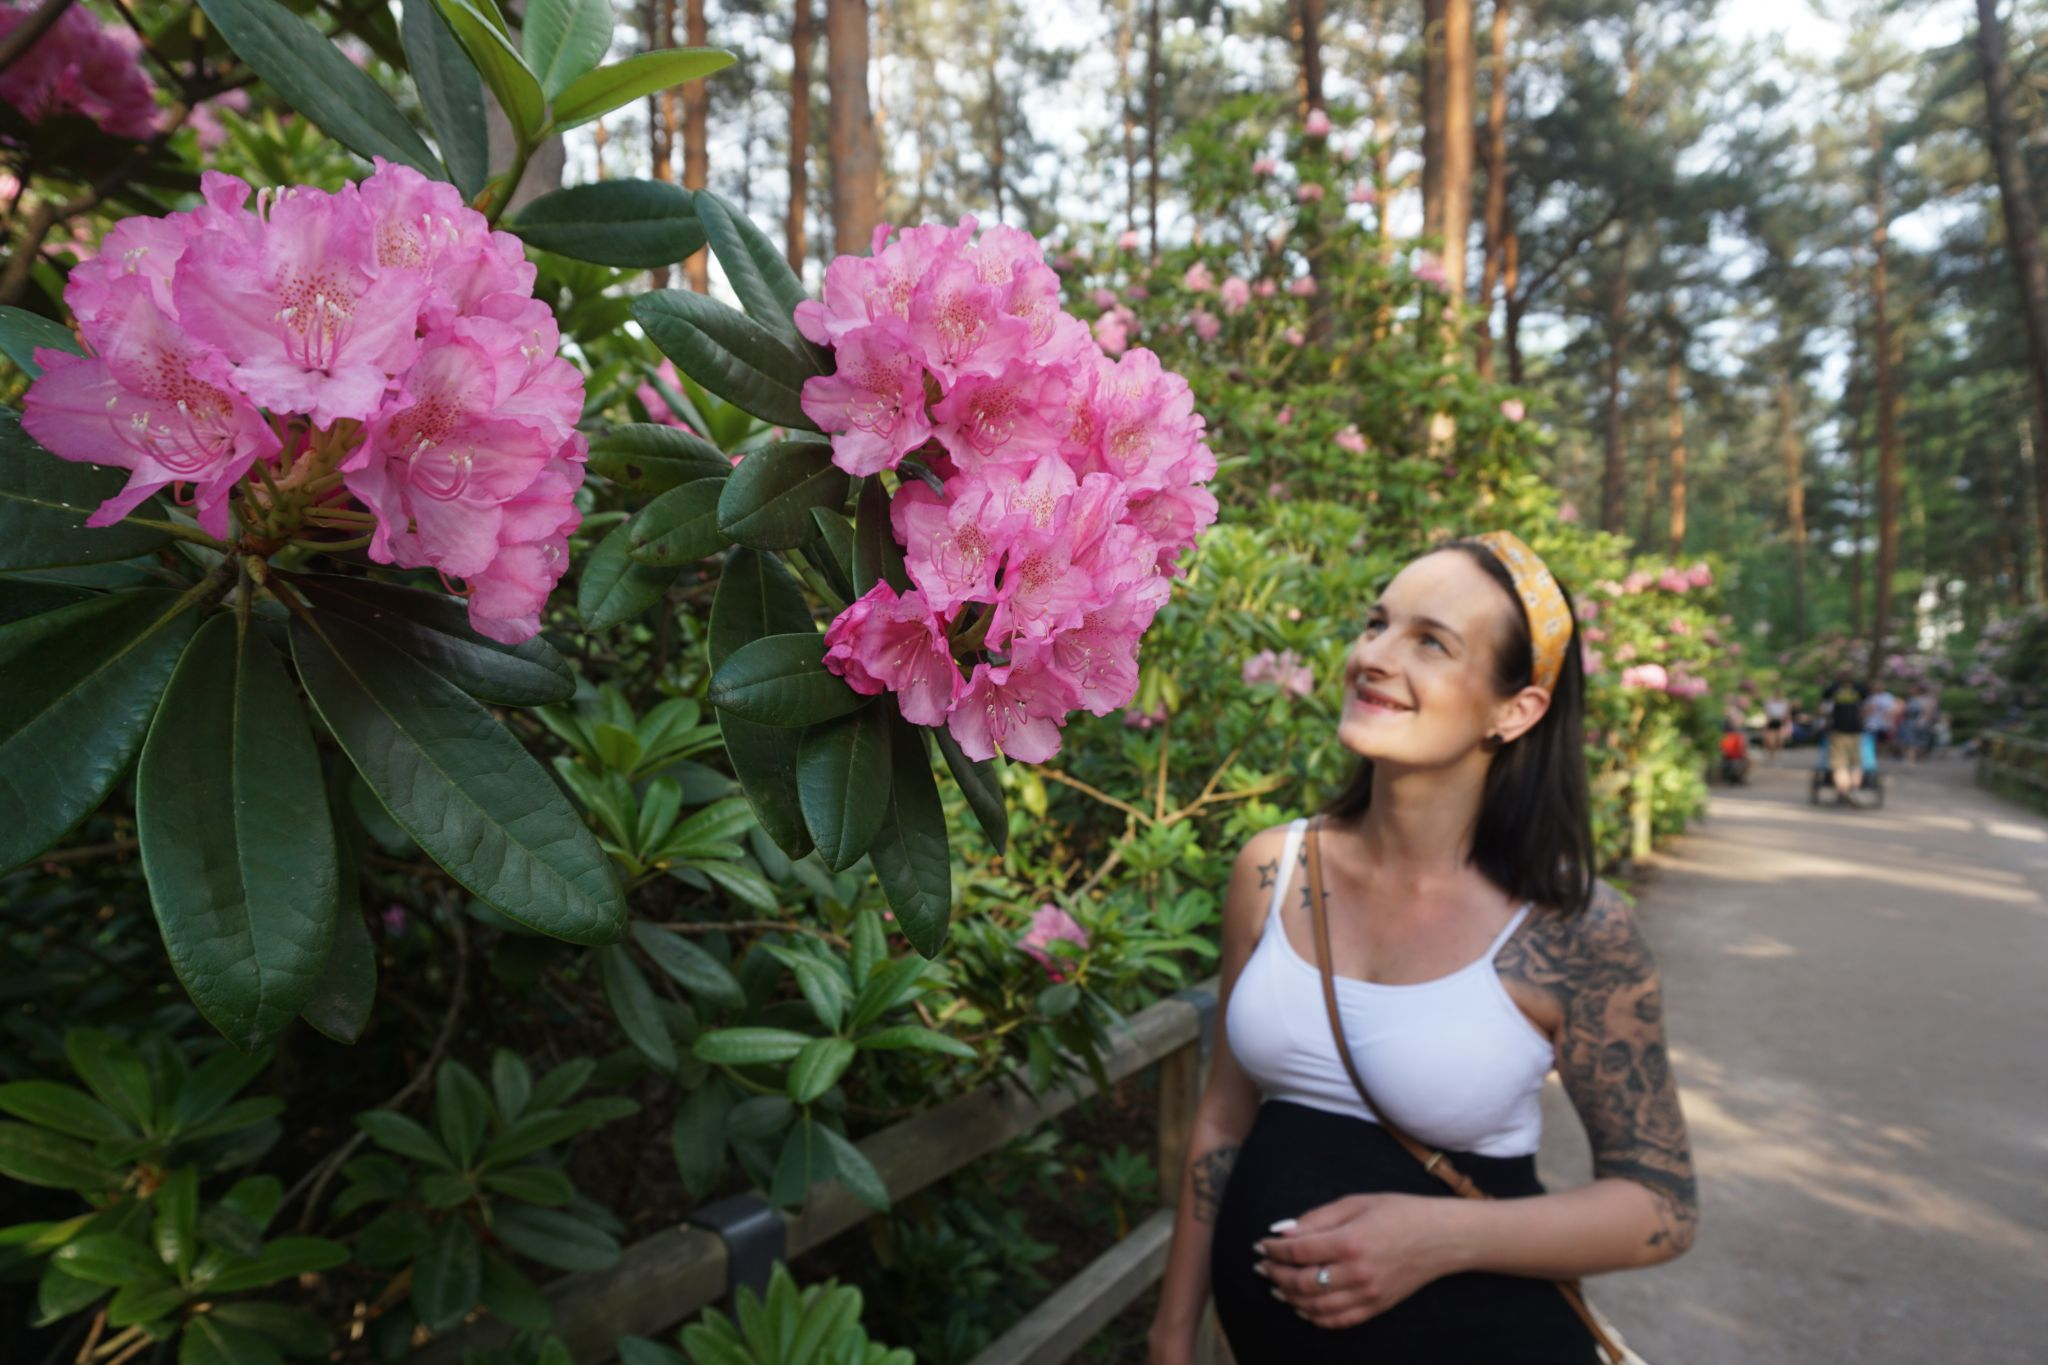 The best time to visit the Rhododendron Park in Helsinki is during the first weeks of June